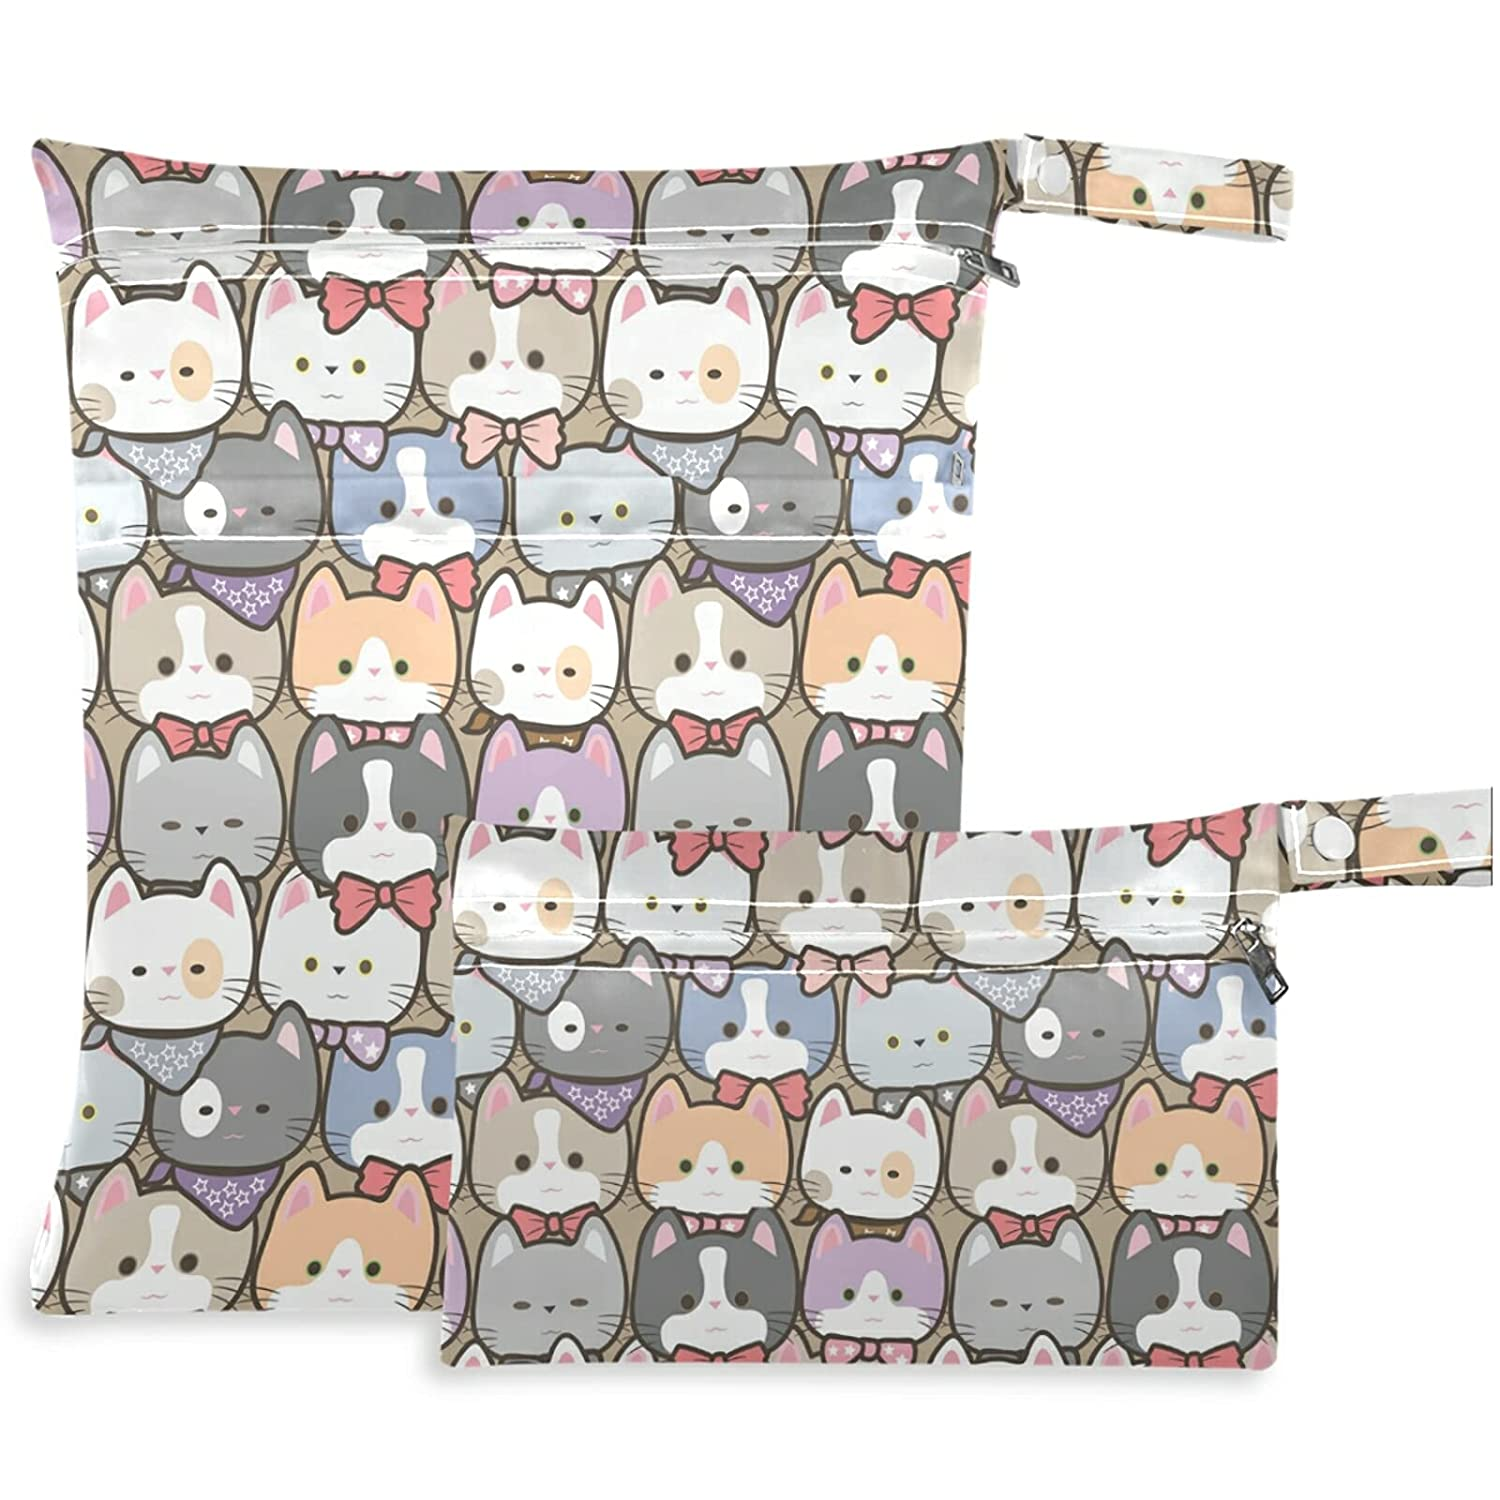 visesunny Kitten Cat Animal 2Pcs Ranking TOP9 Wet Pockets with Bag Zippered W Now free shipping